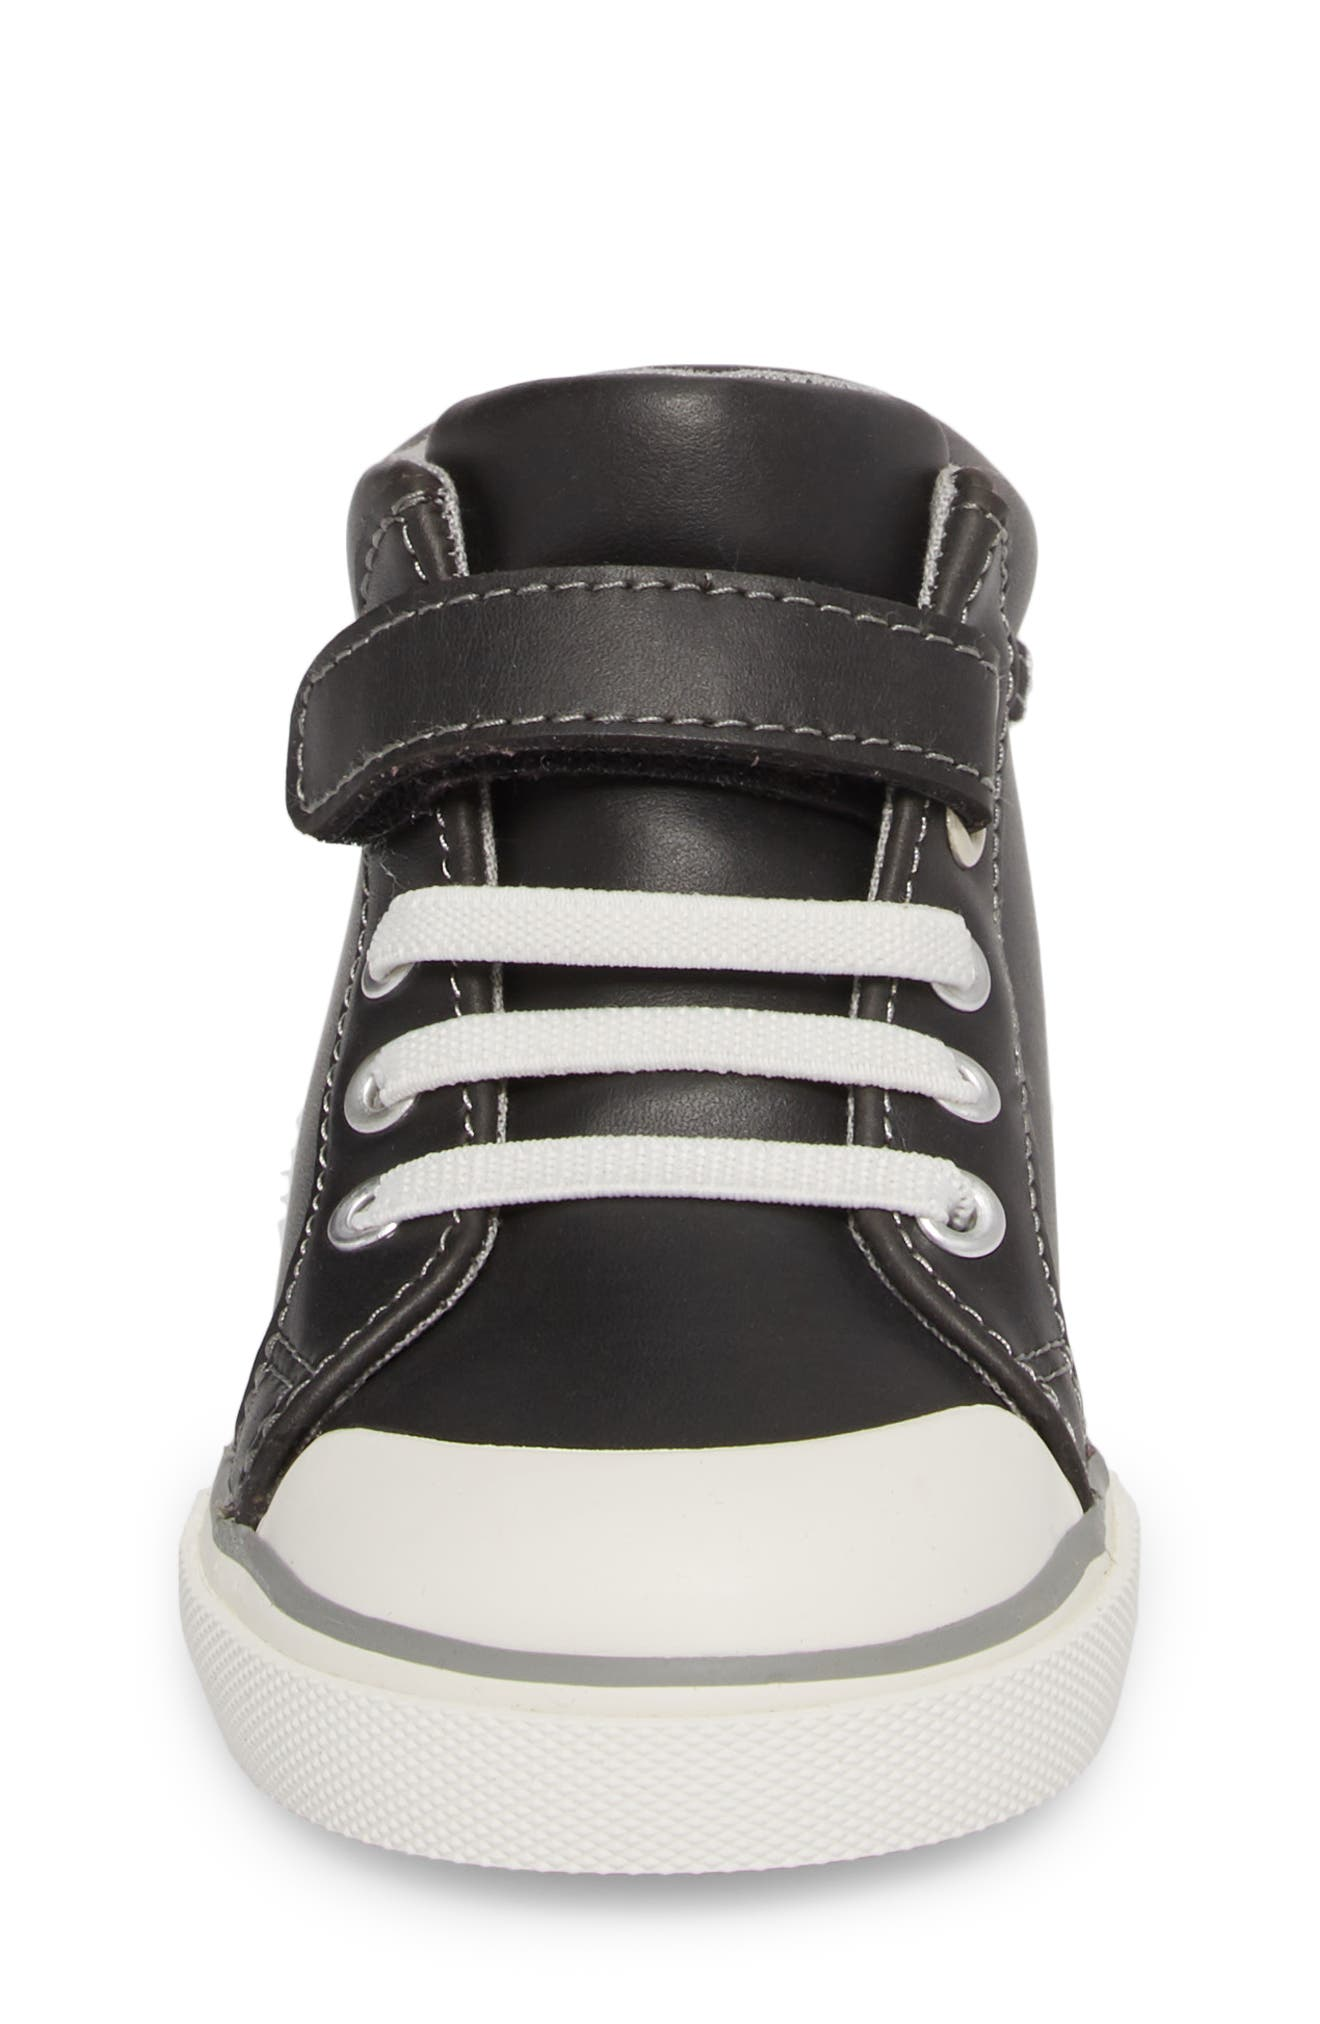 Peyton High Top Sneaker,                             Alternate thumbnail 4, color,                             BLACK LEATHER